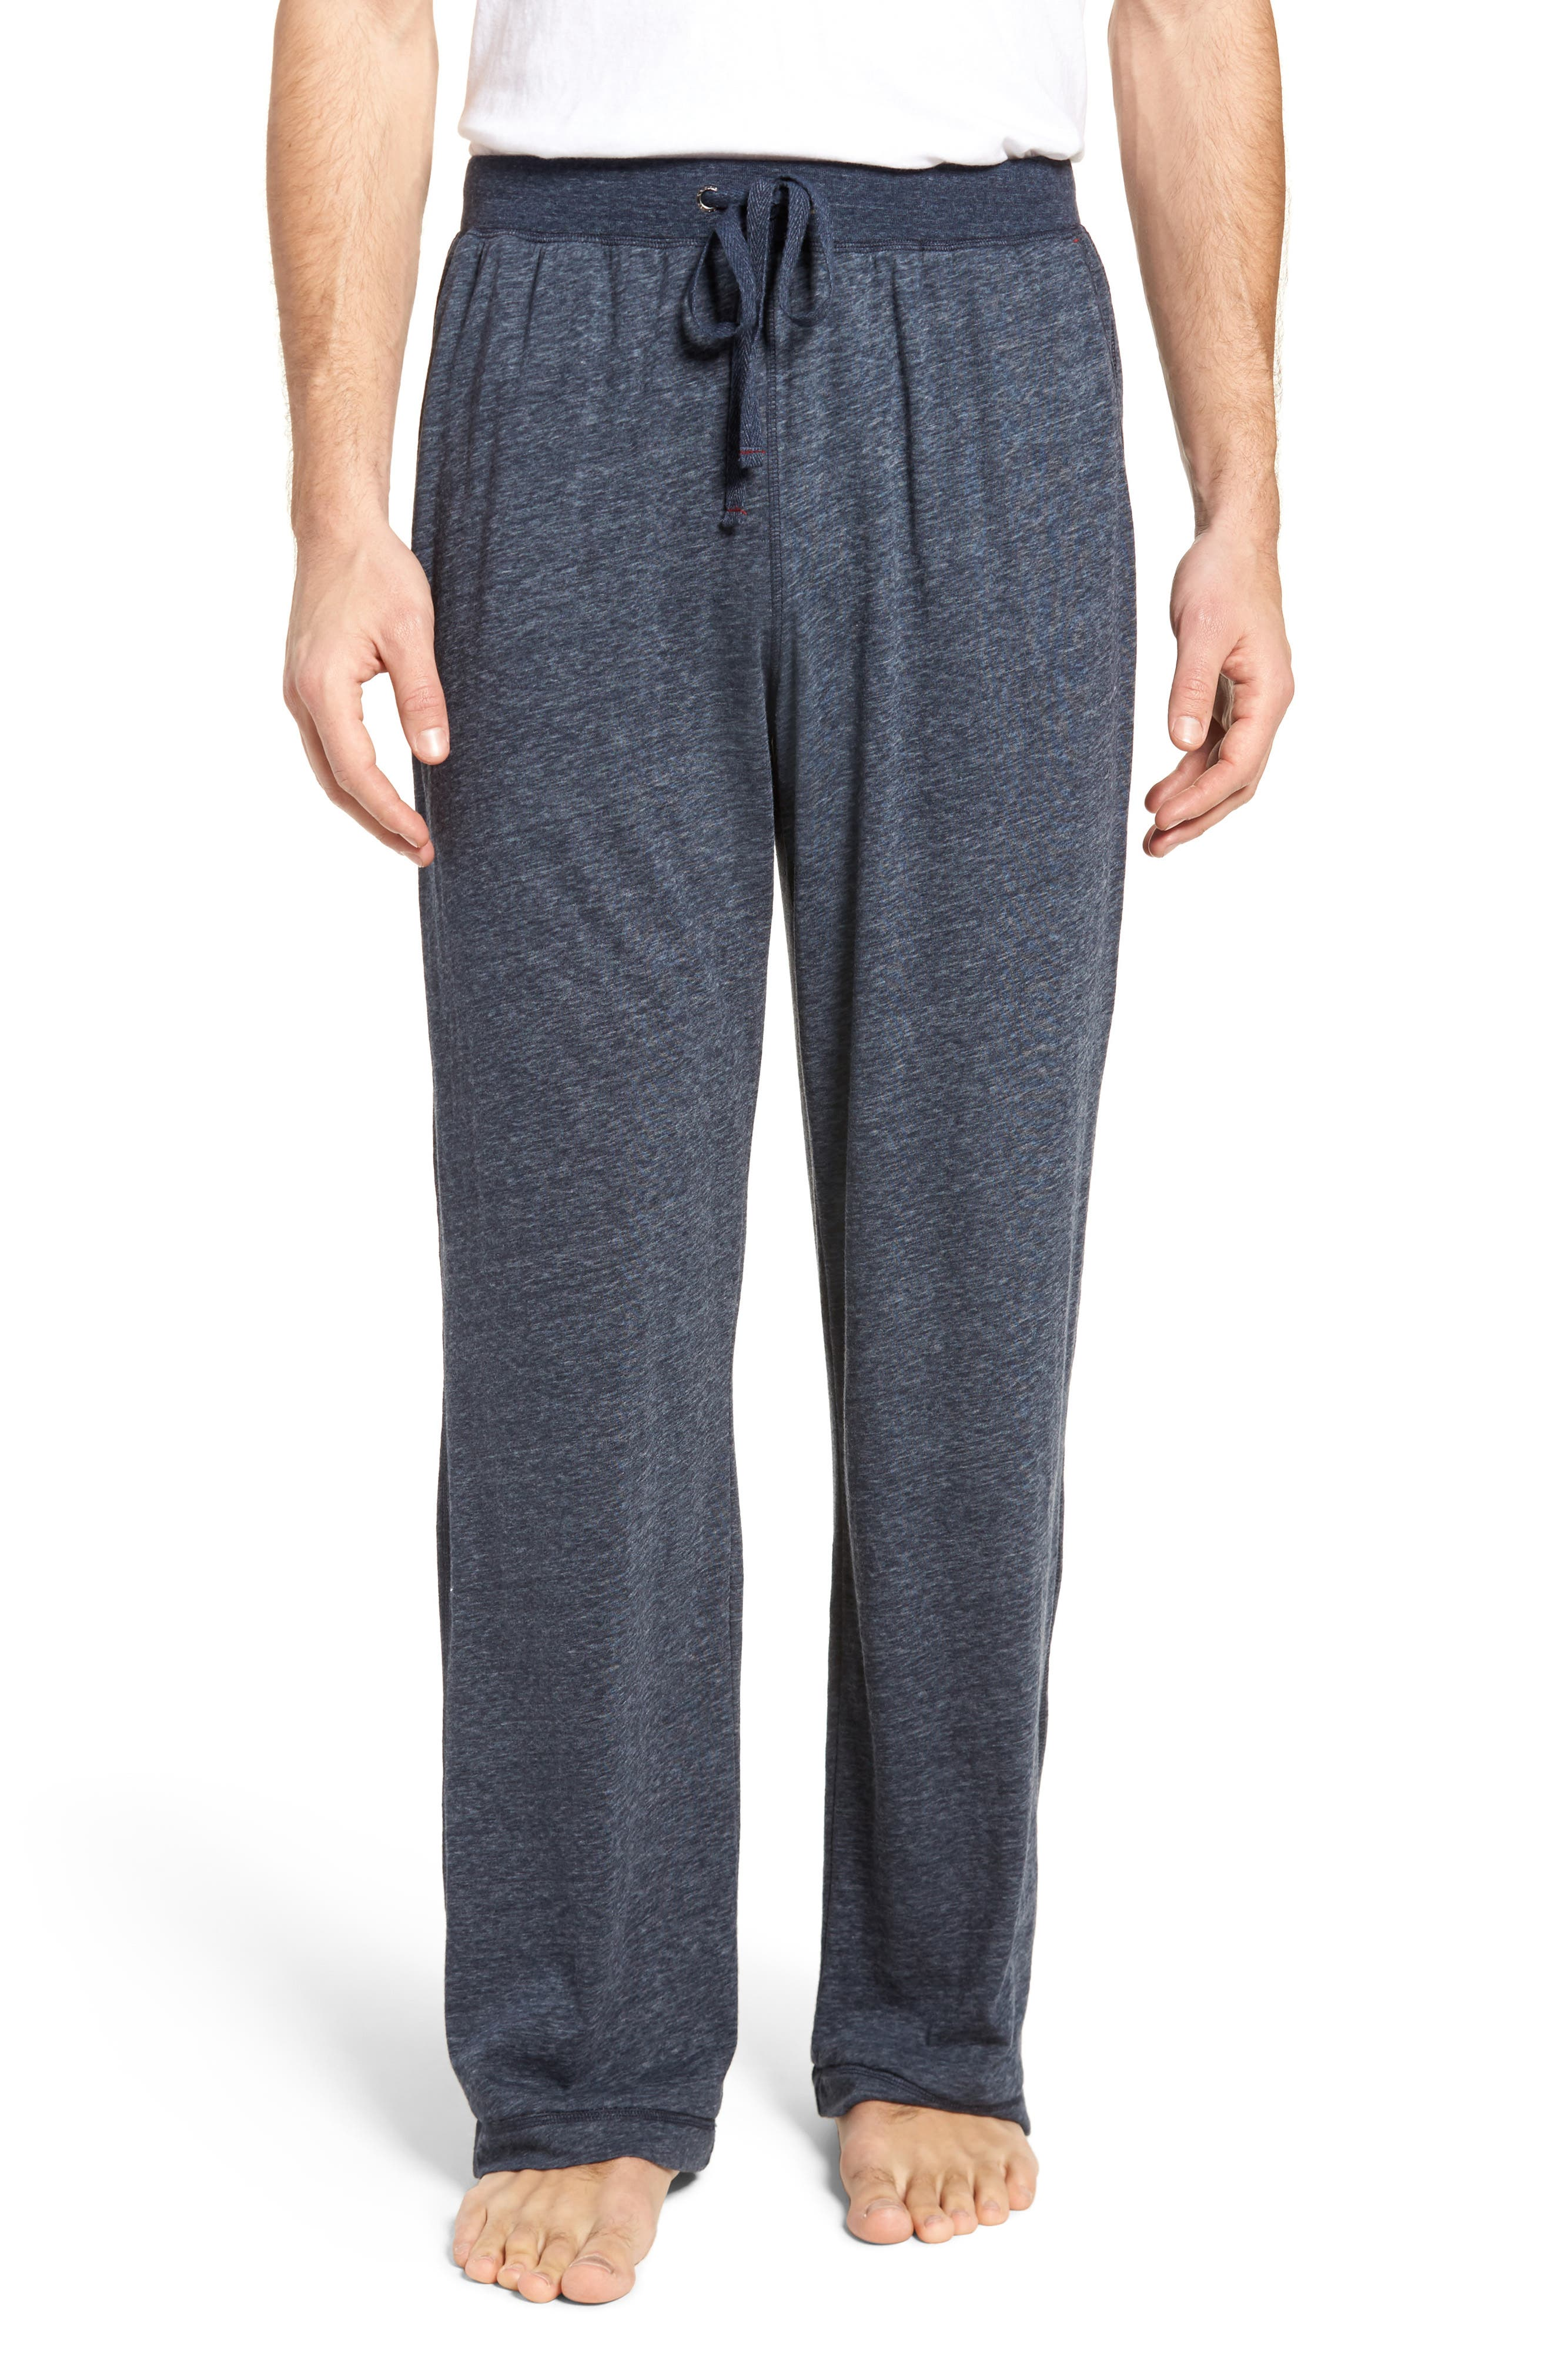 Recycled Cotton Blend Lounge Pants,                             Main thumbnail 1, color,                             NAVY HEATHER